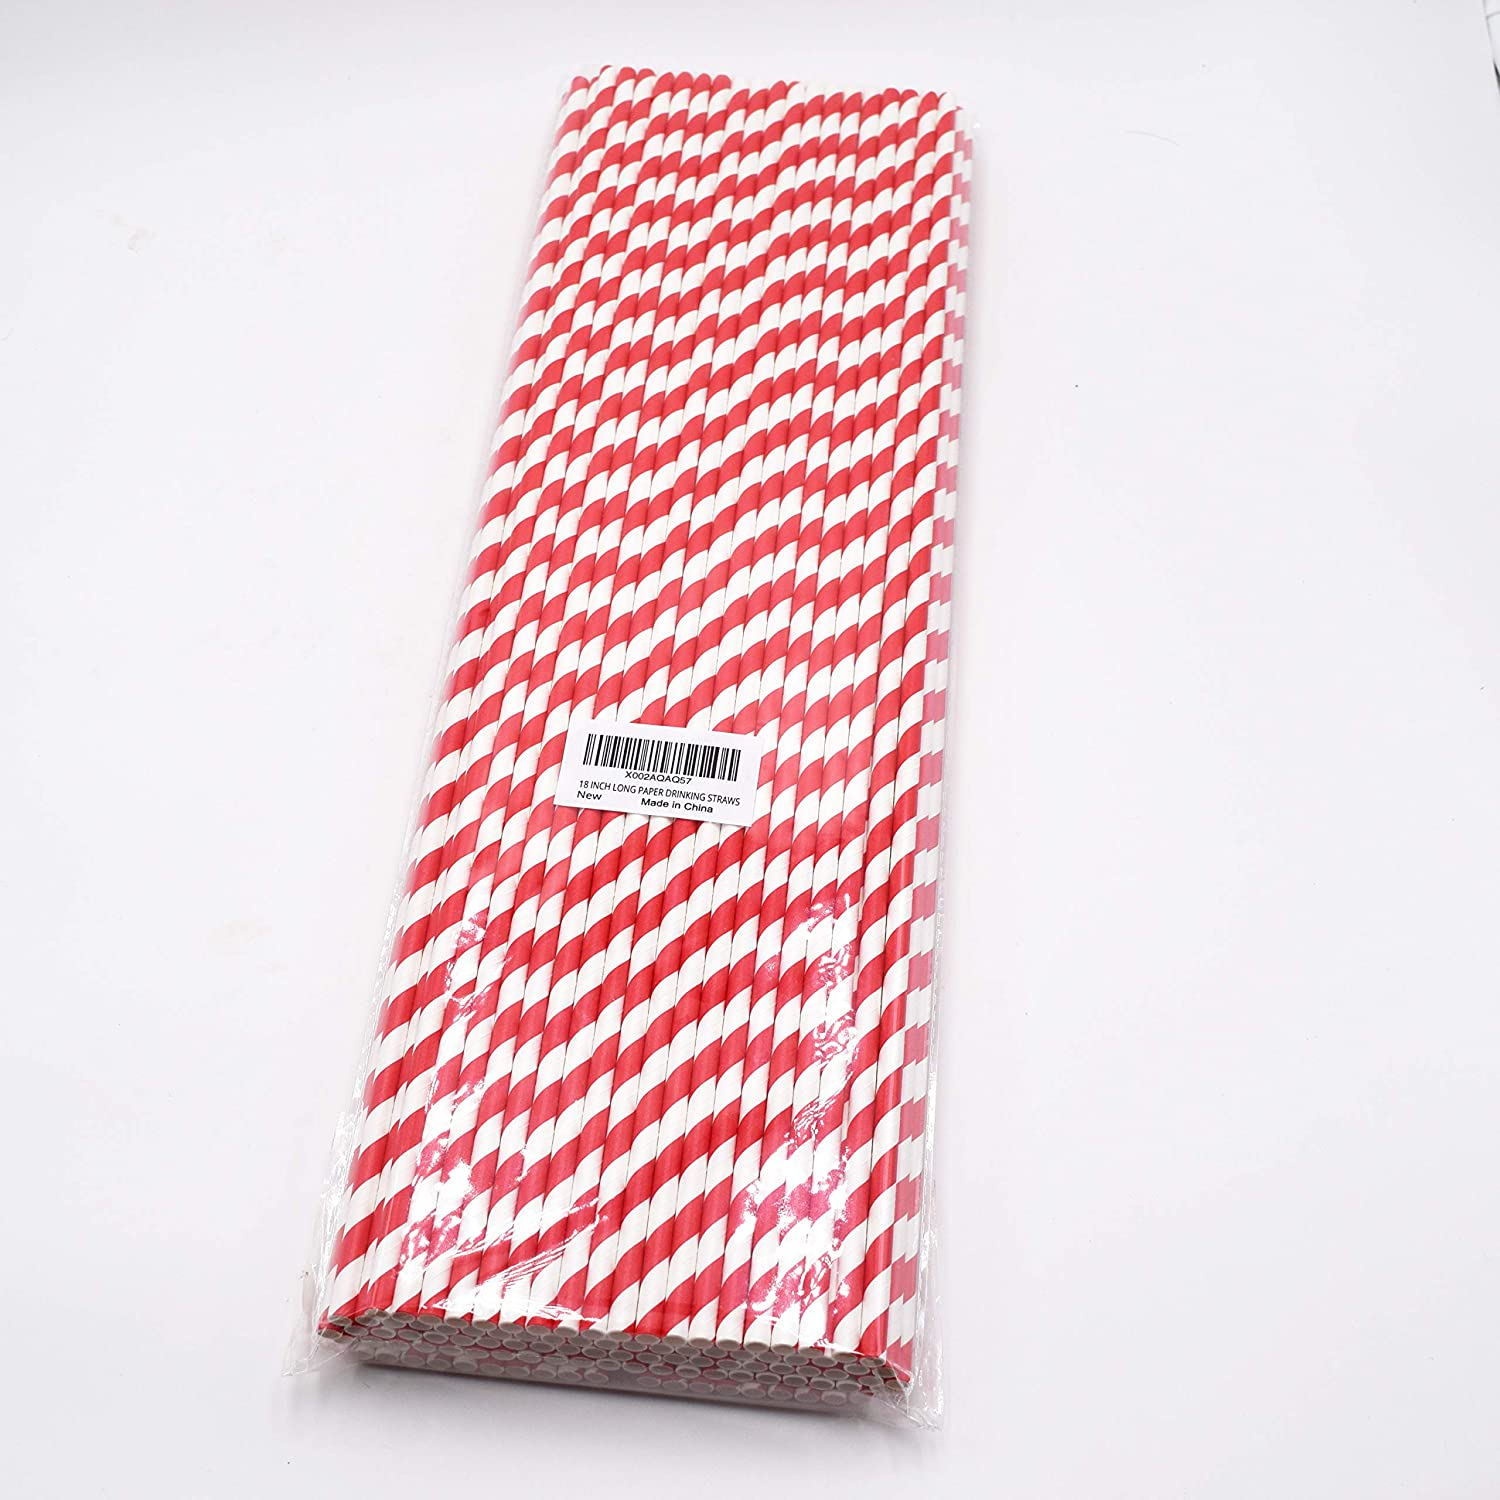 18 Inch Extra Long Paper Drinking Straws, 100% Biodegradable, Red Stripe, 100 Count, for Large Tall 100oz Drink Containers, Fish Bowls, DIY Art Straws and Many